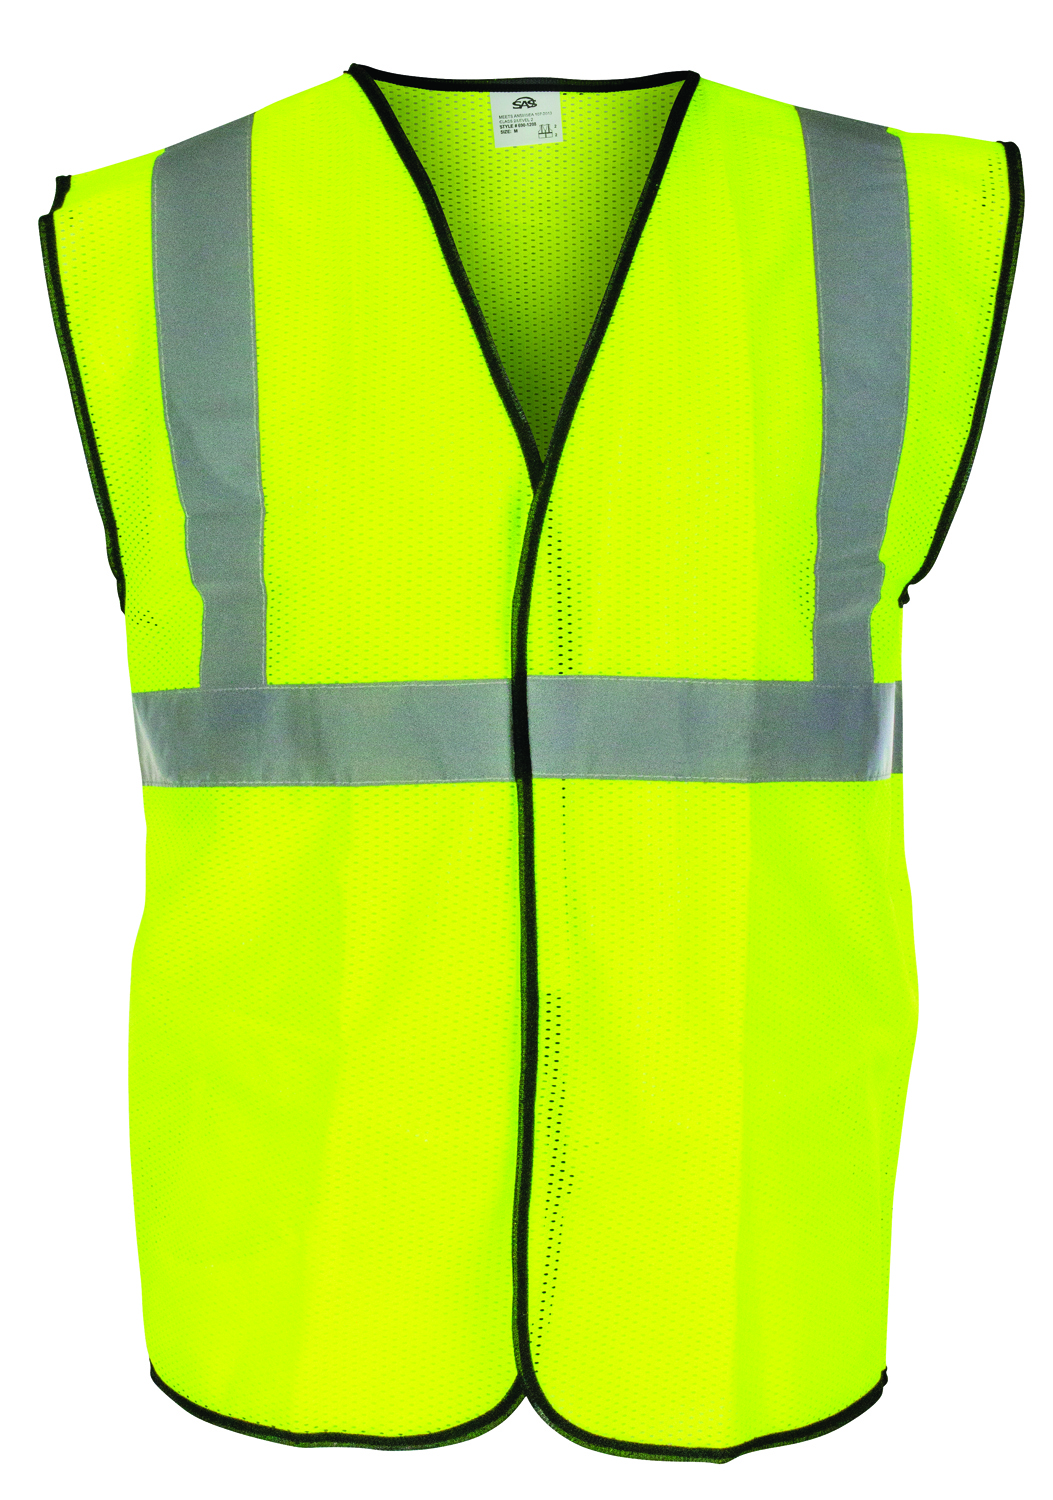 690-1210 - ANSI Class 2 Safety Vest-Class 2 Safety Vest-Yellow, Xlarge----UOM: 1/EA